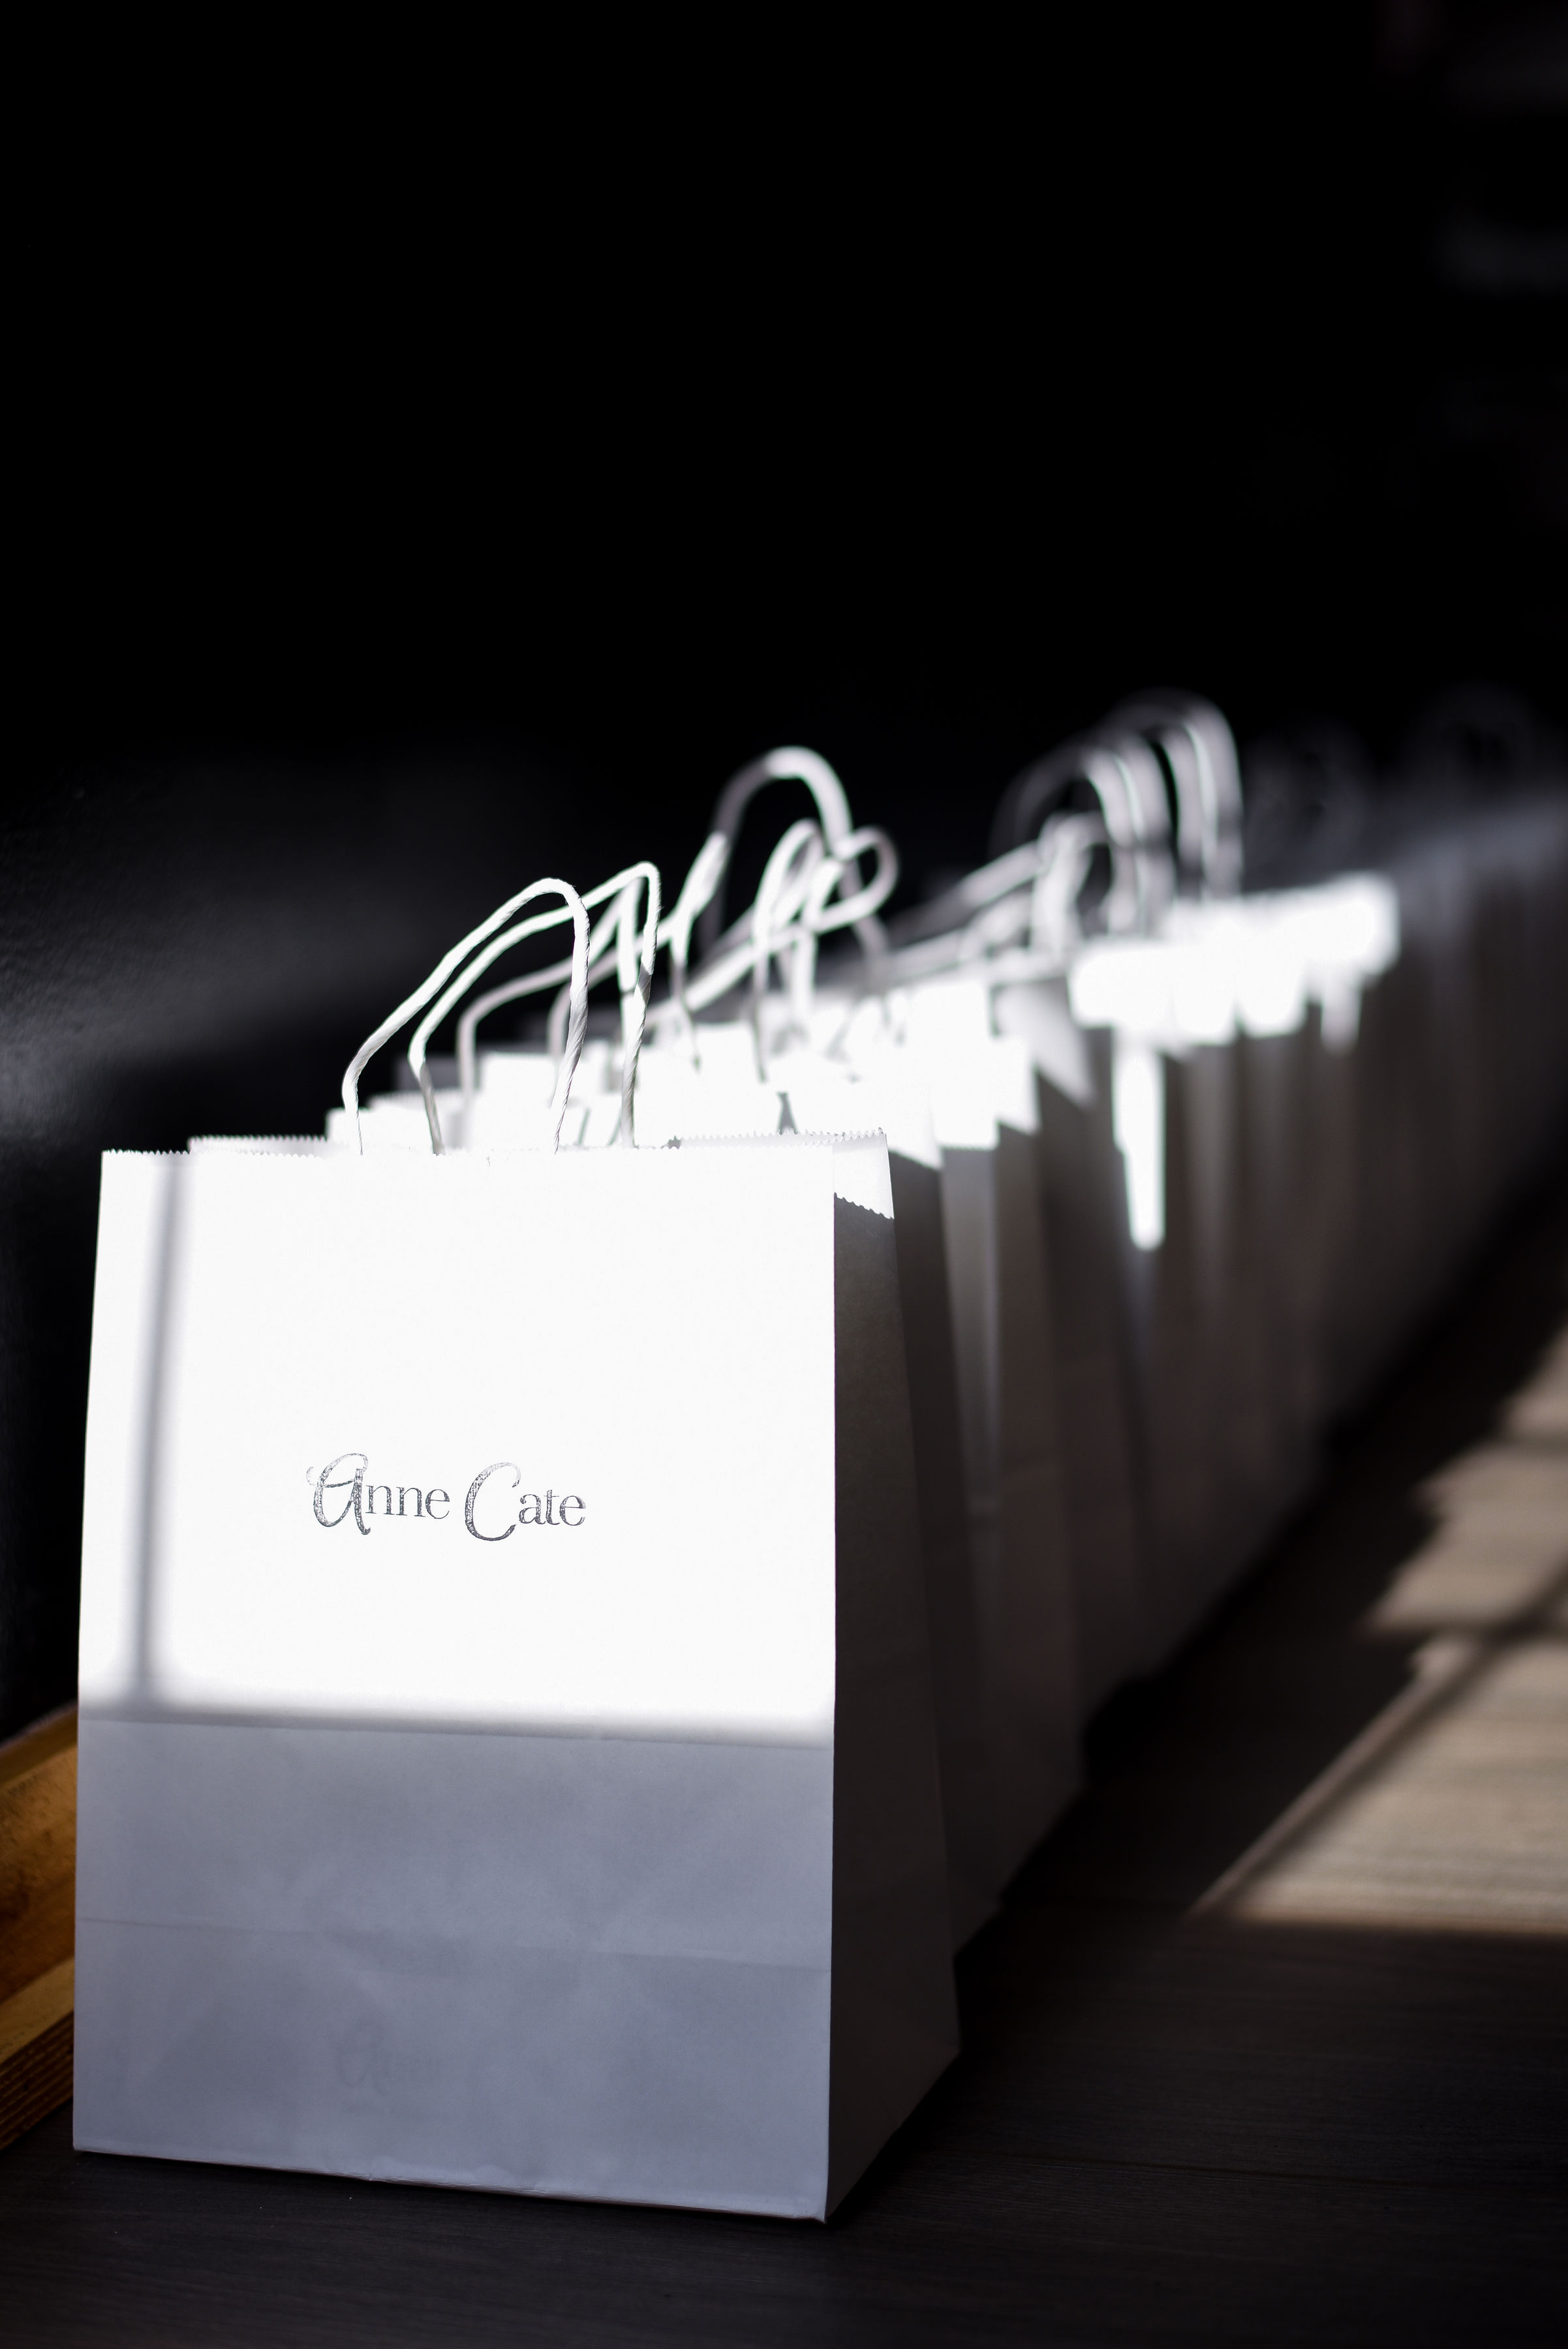 Anne Cate goodies waiting to be collected by guests.  Photo by Stephanie Penick Photography.